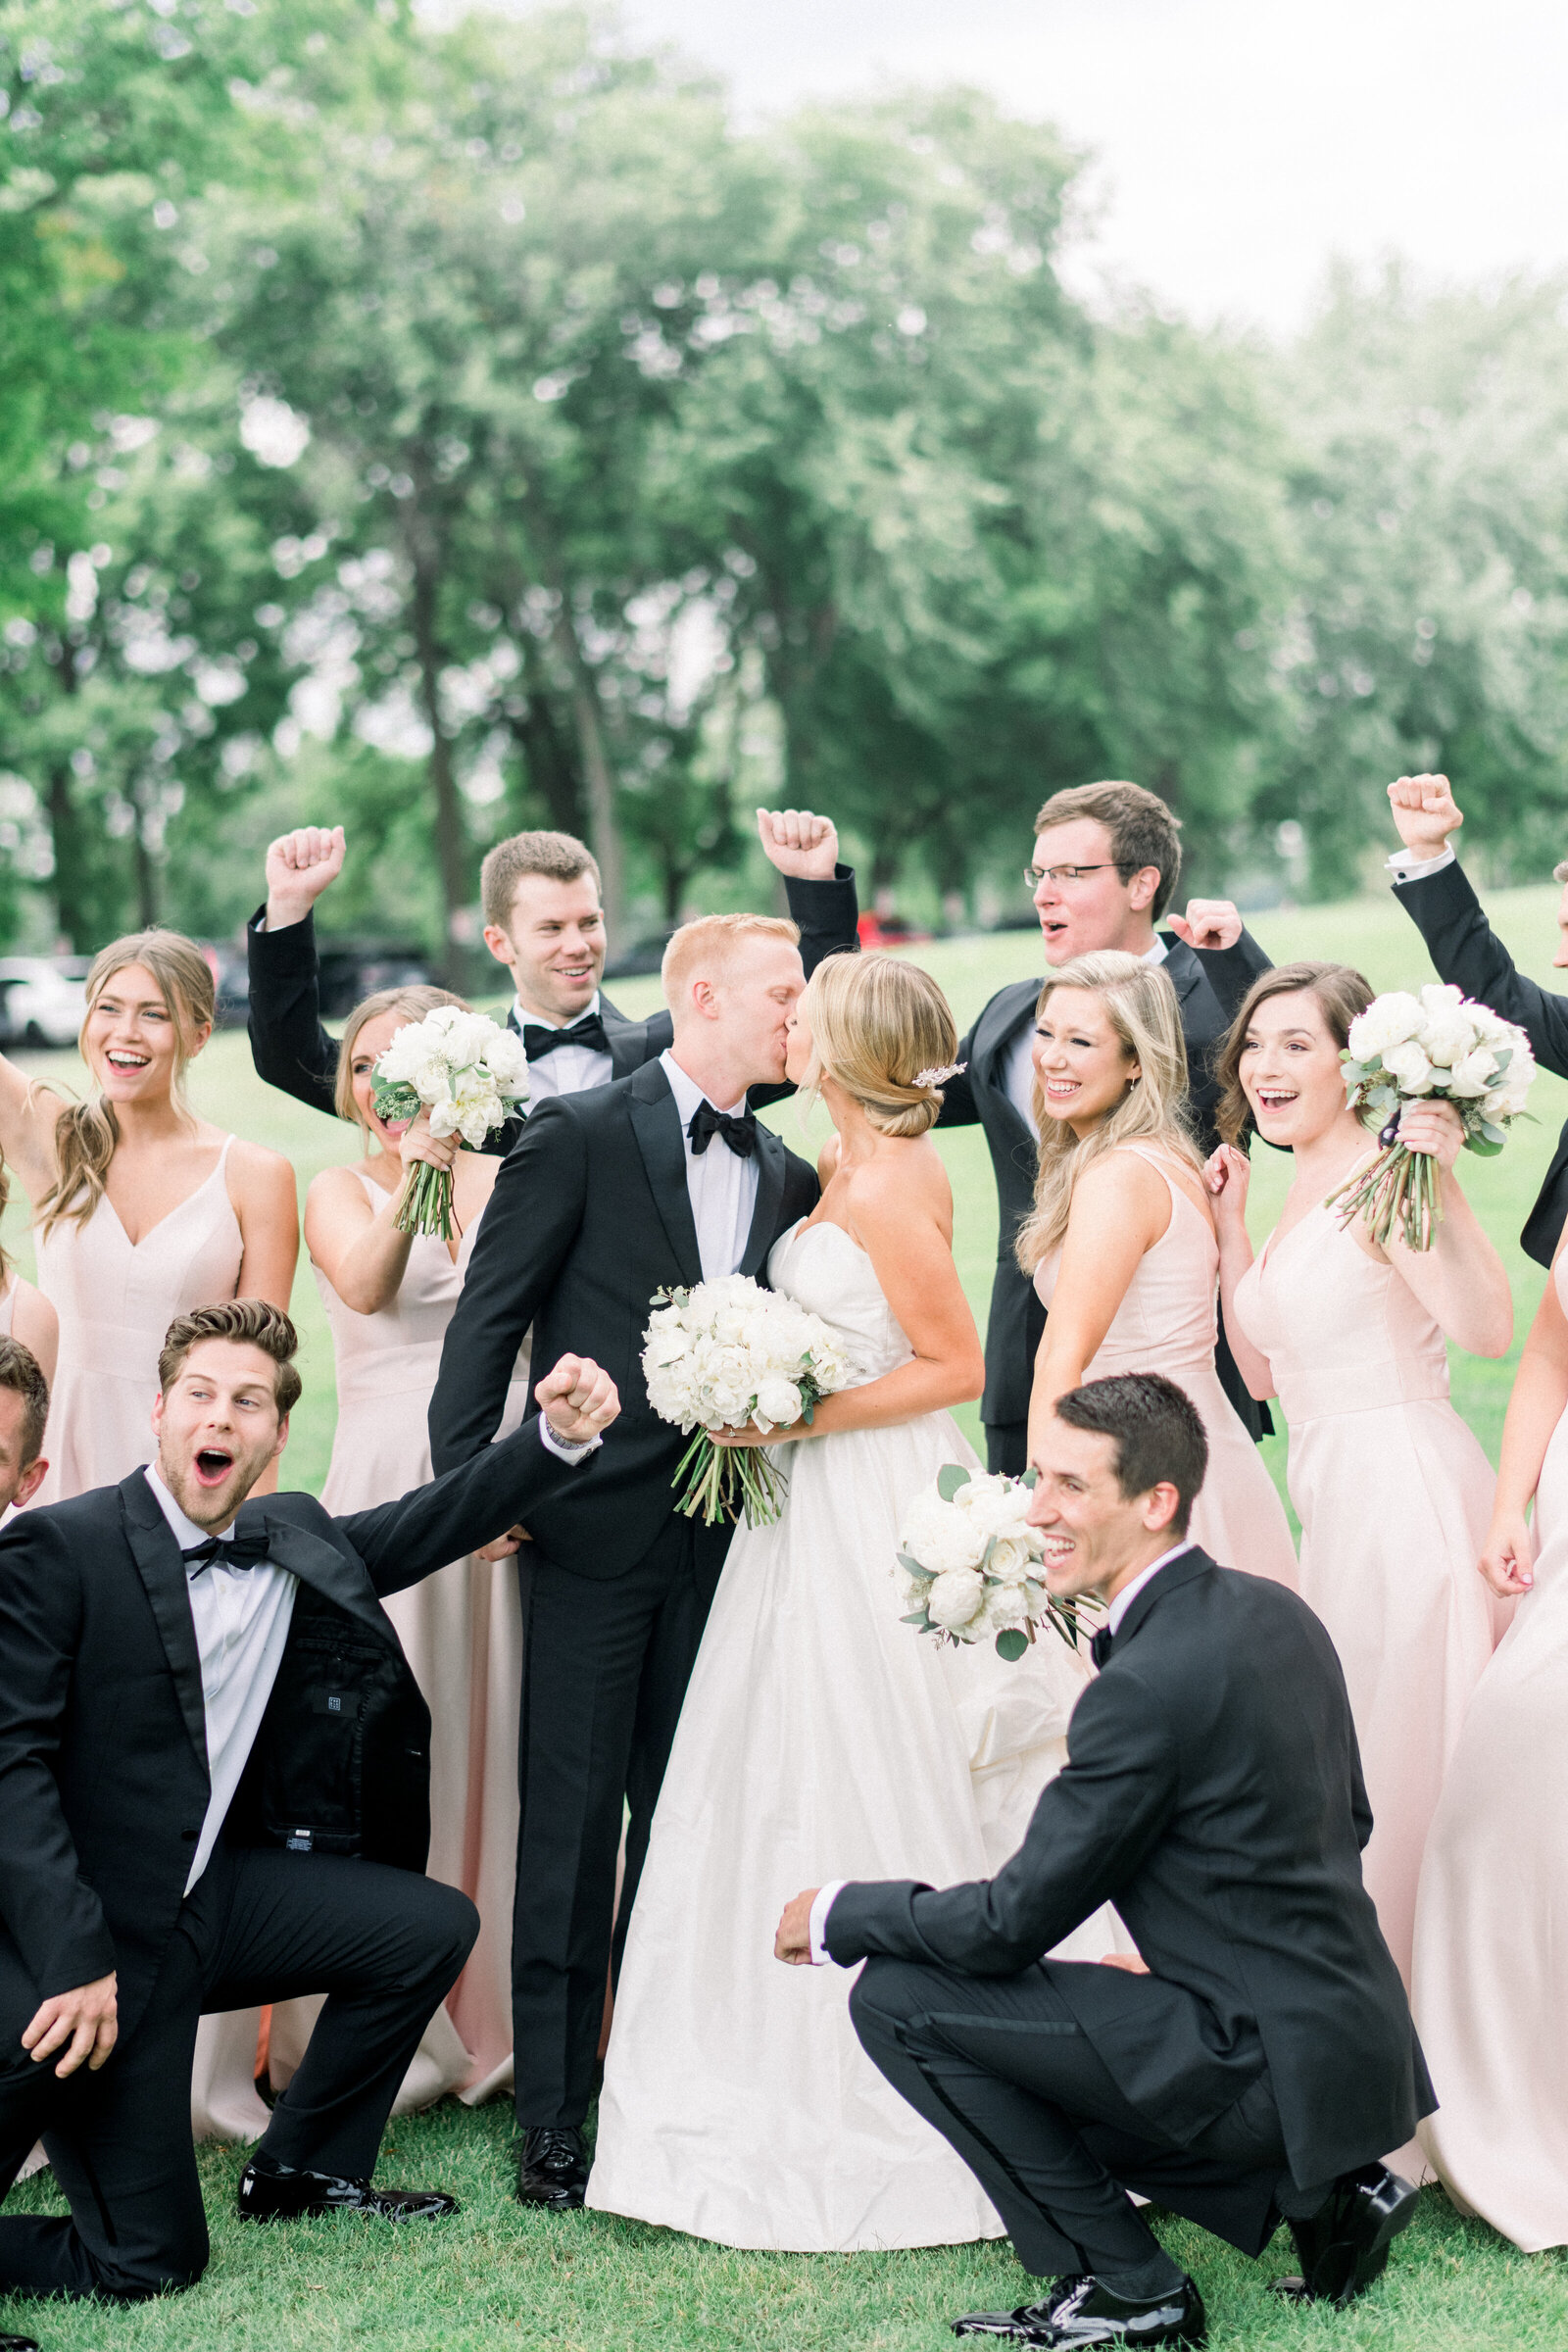 Bridal party photo by Minnesota wedding photographer